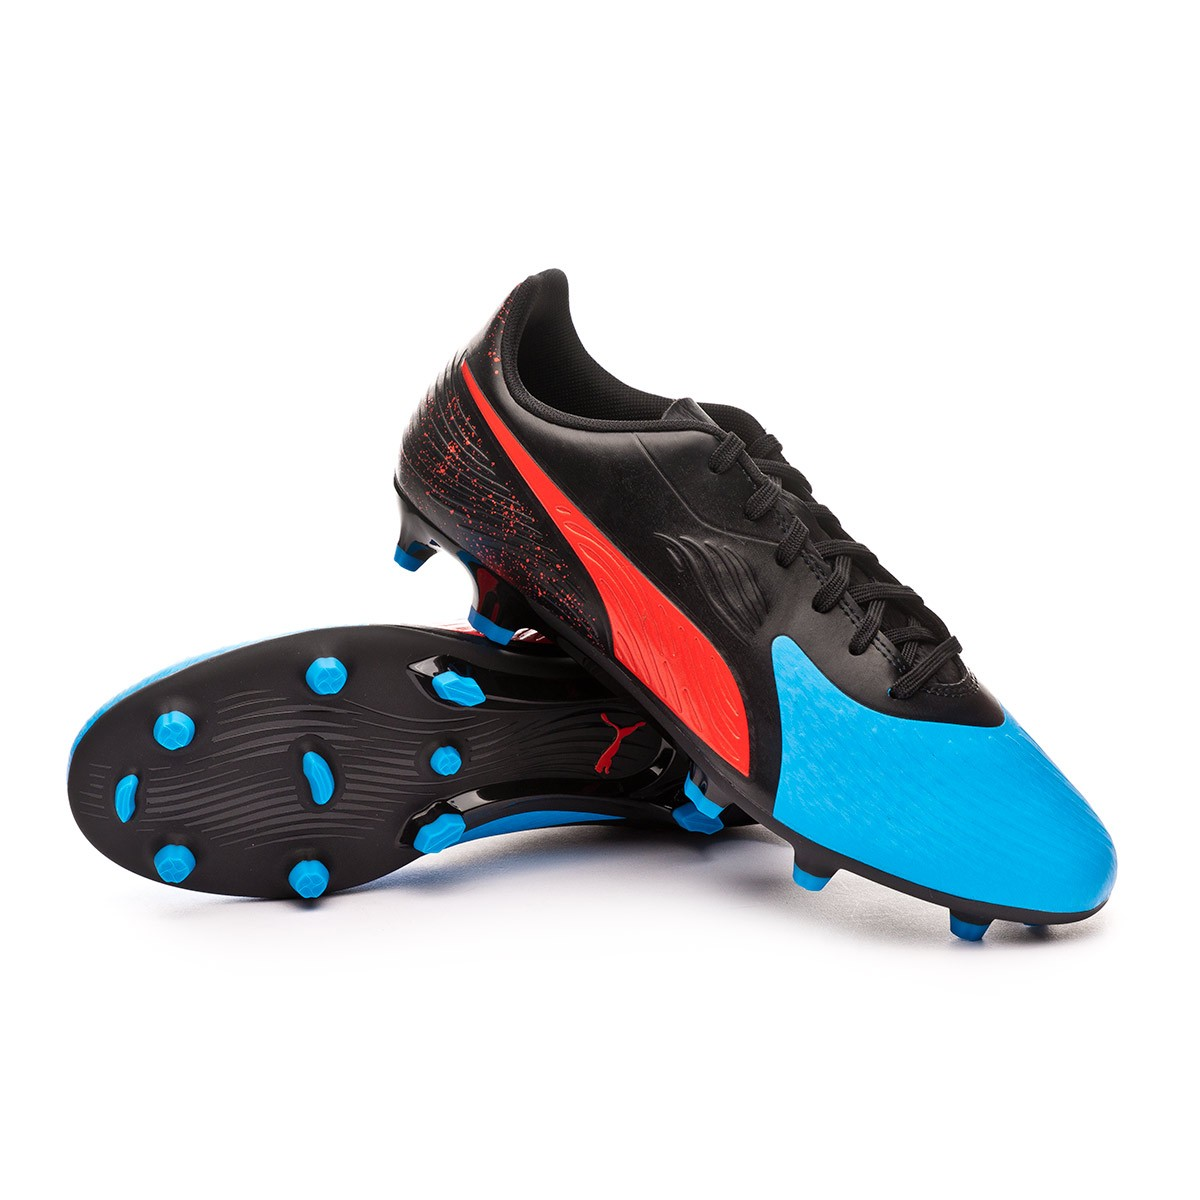 0bbac5fe1a7 Boot Puma One 19.4 FG AG Bleu azur-Red blast-Black - Football store Fútbol  Emotion